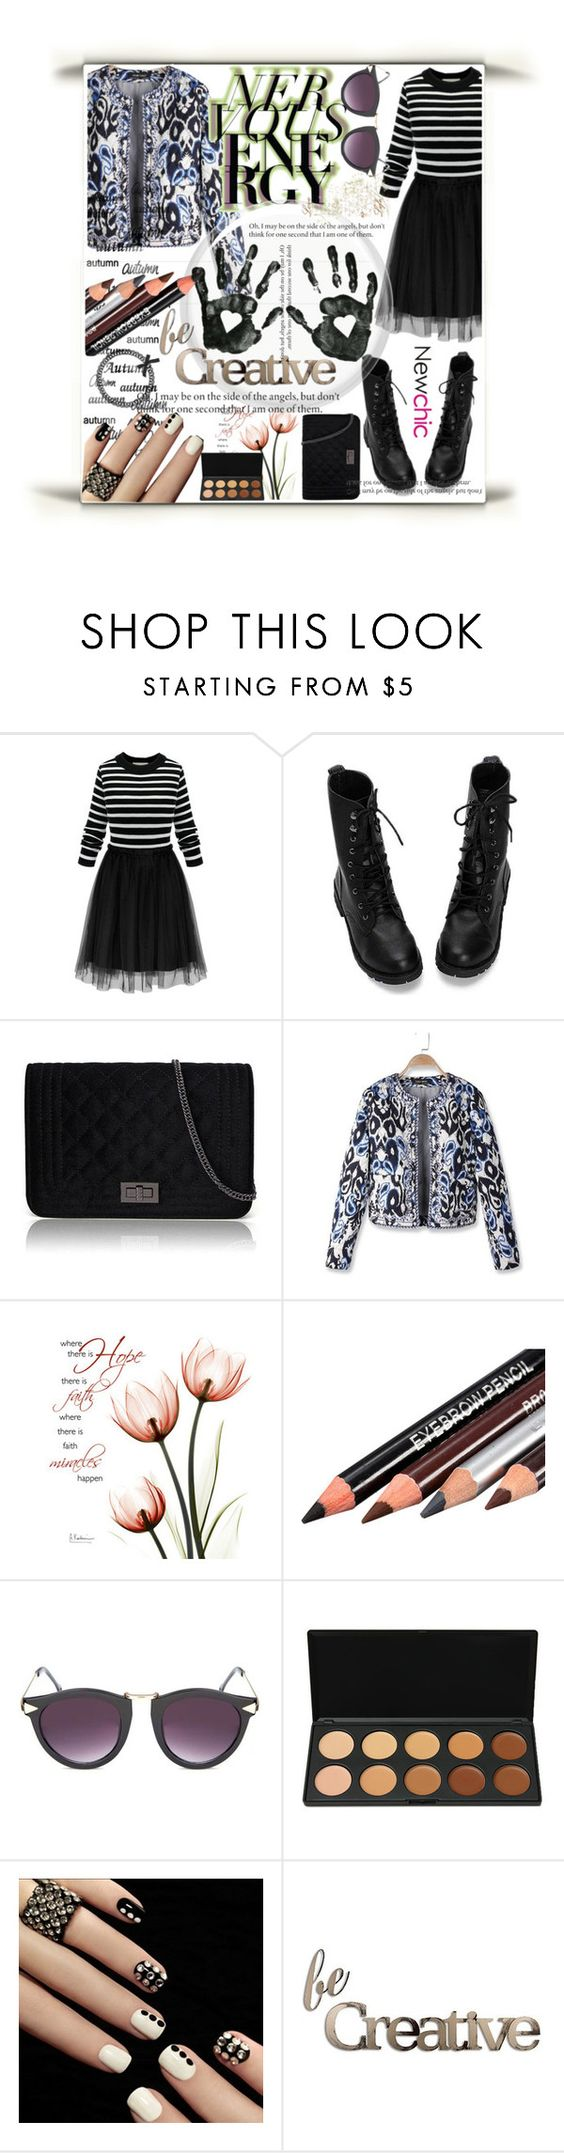 """""""#newchic"""" by armella ❤ liked on Polyvore featuring Letter2Word, chic and newchic"""